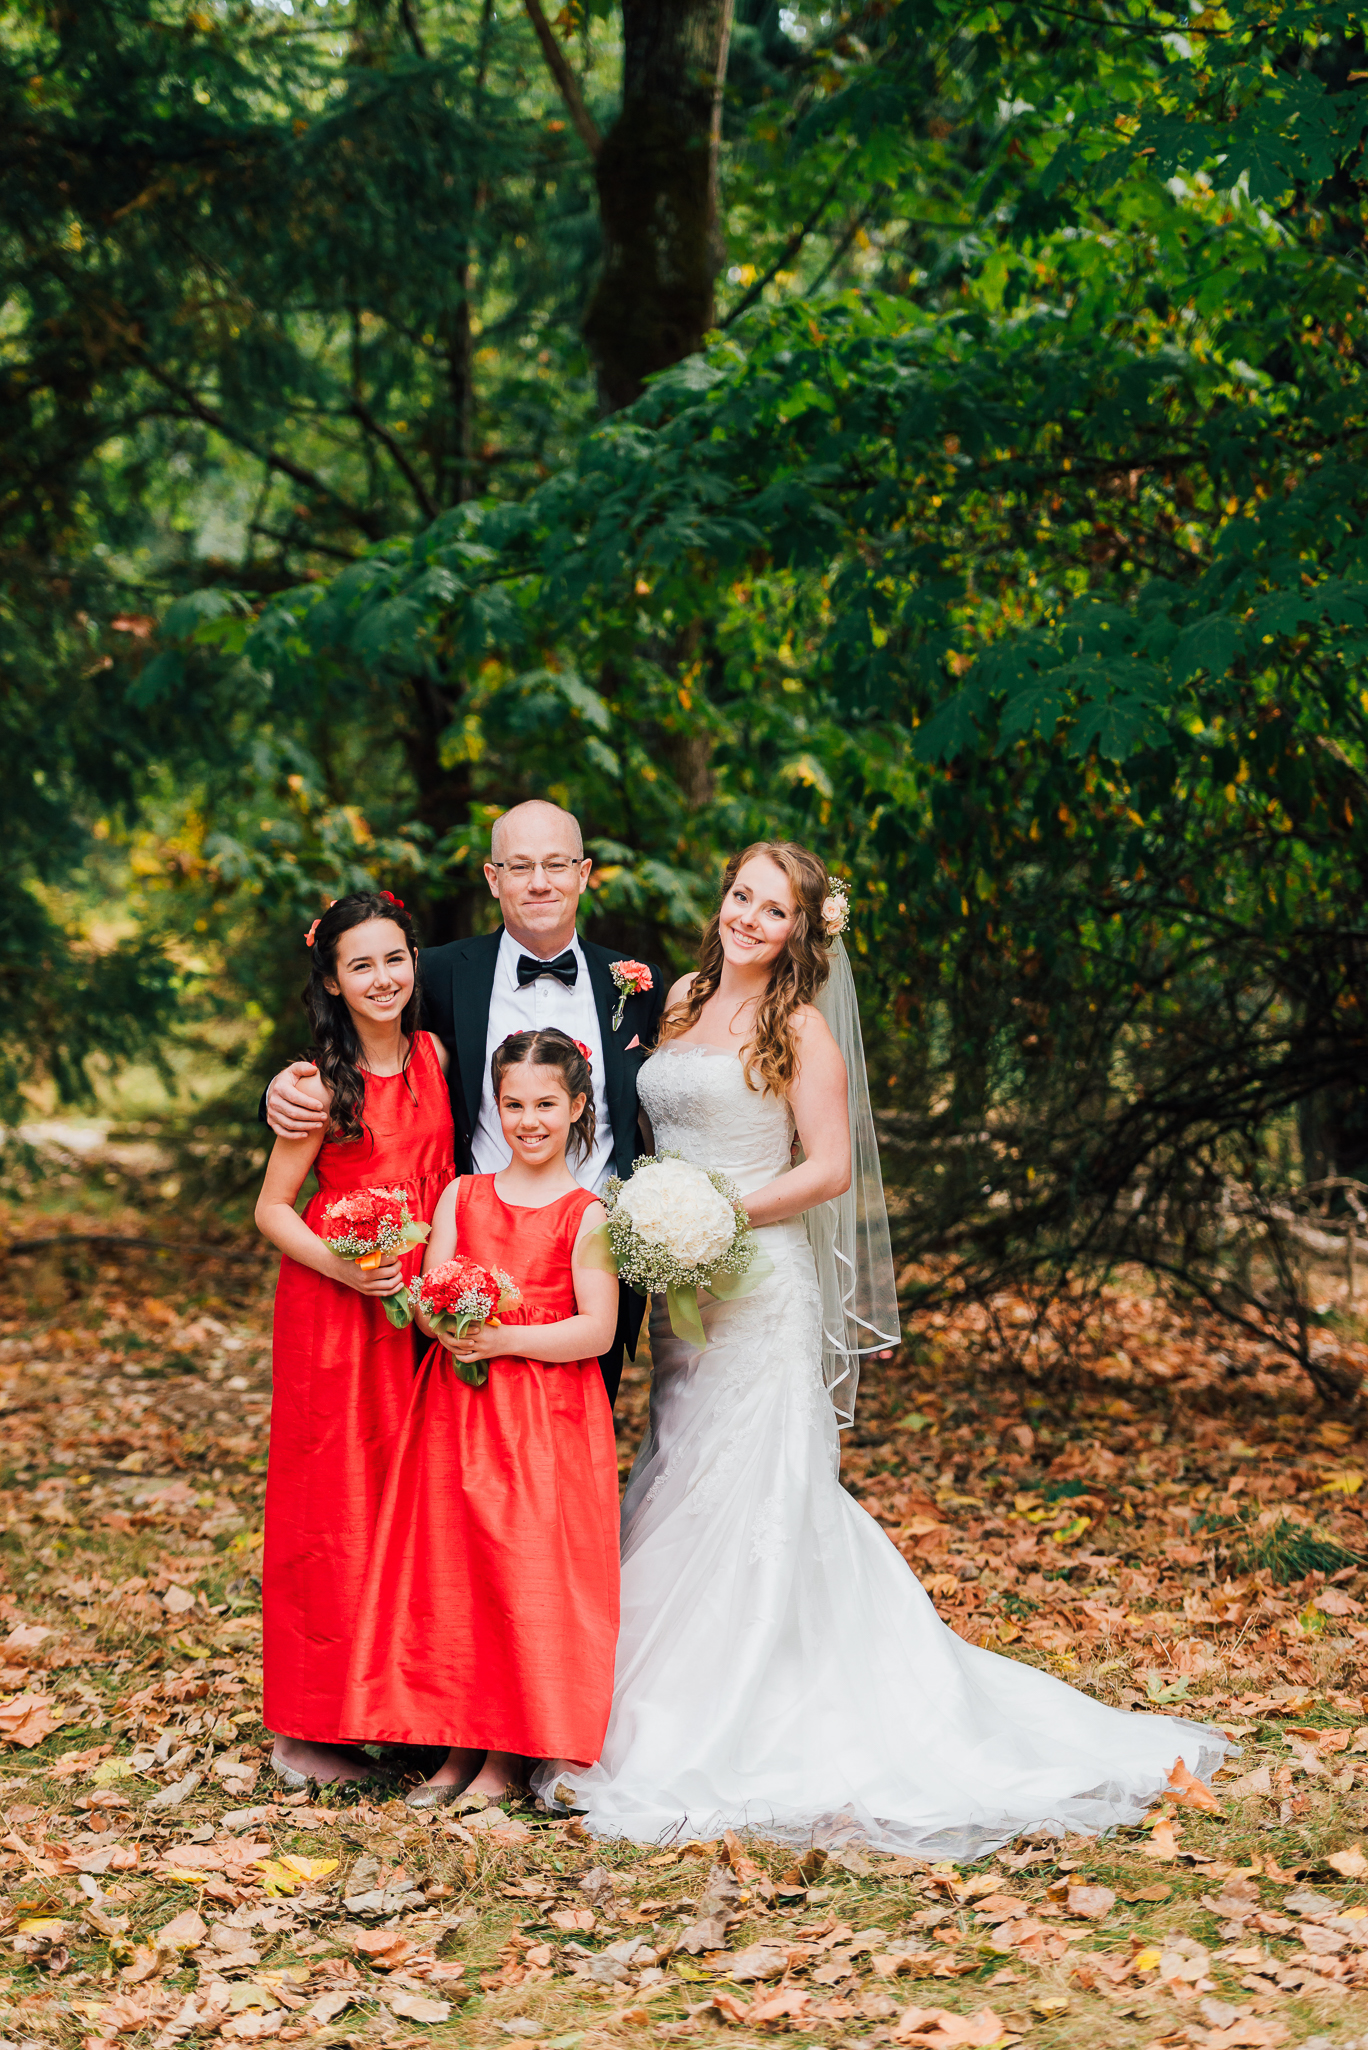 Lily and Lane-Victoria-Wedding-Photographer